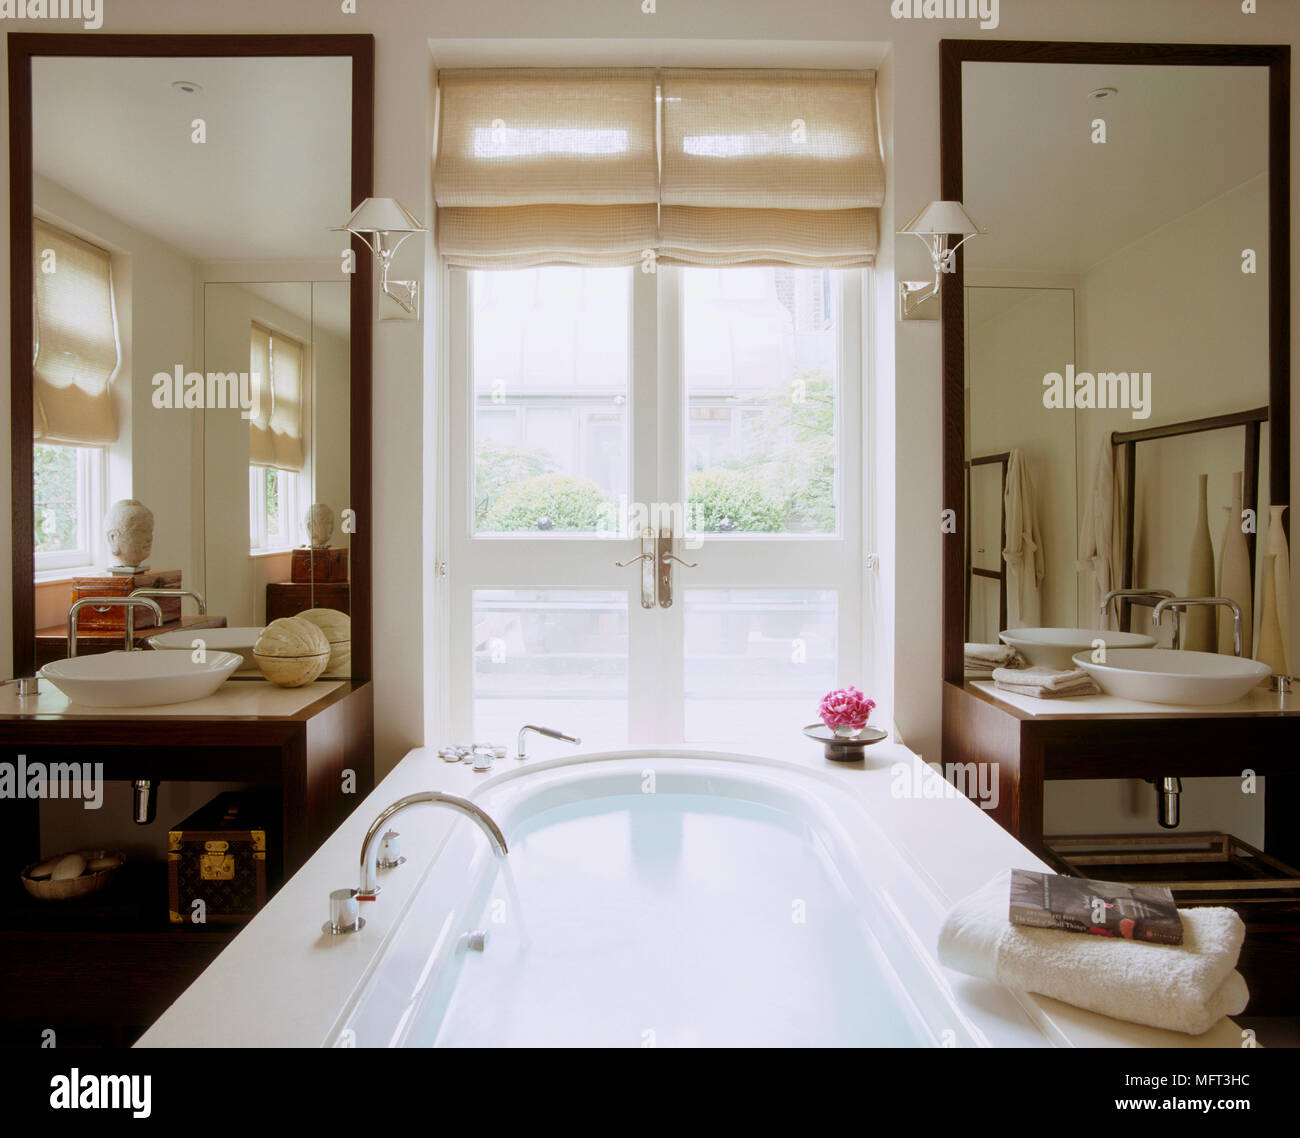 Freestanding bath in centre of bathroom with matching washbasins and ...